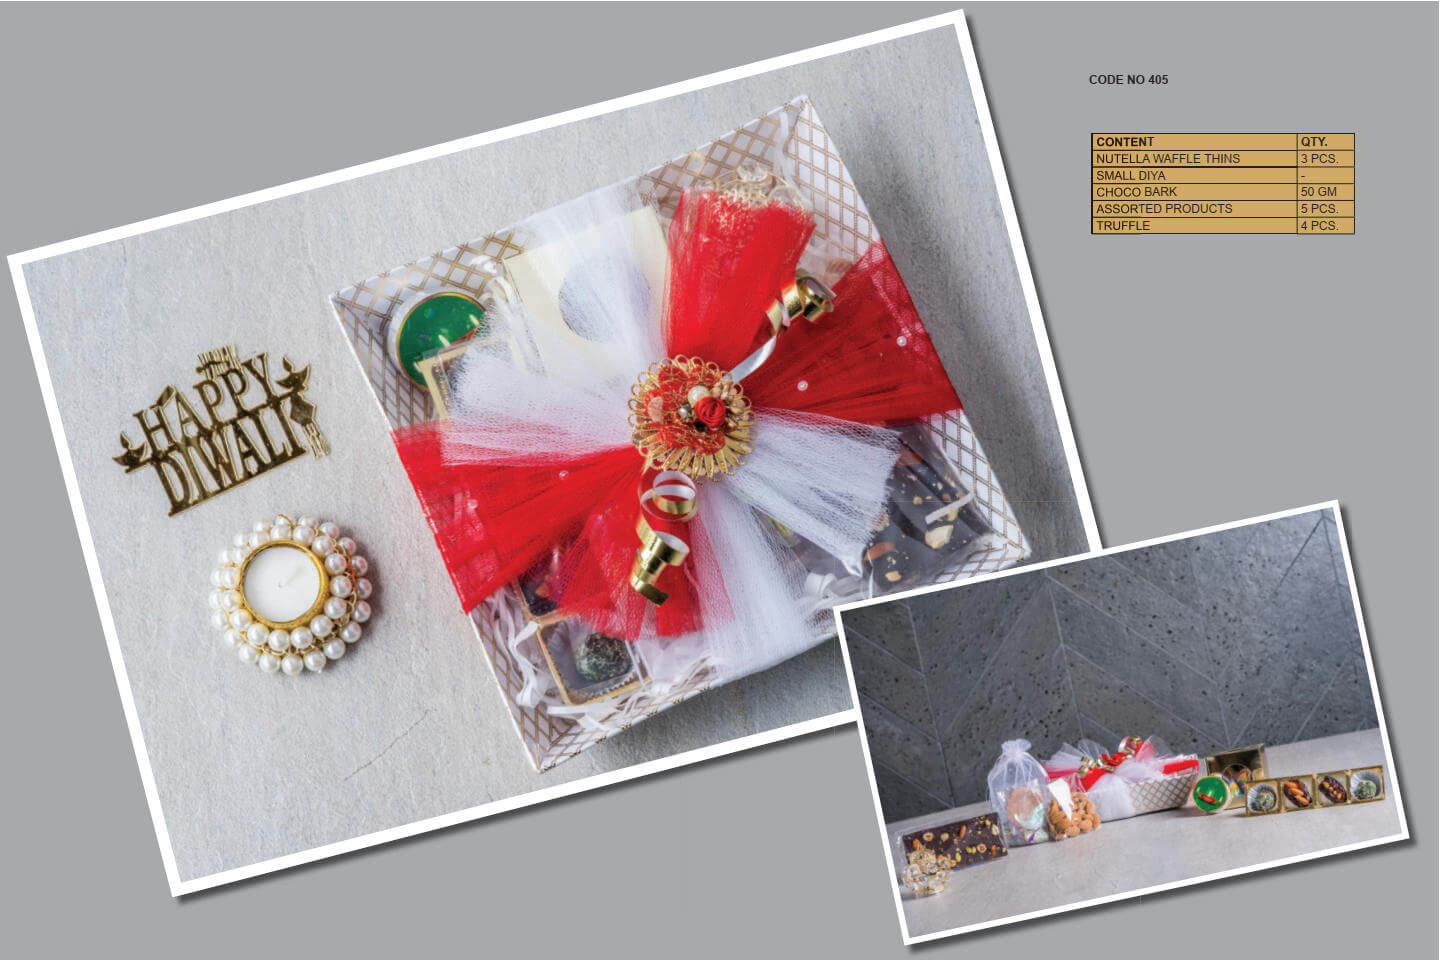 Personalized Diwali Gifts CODE NO 405